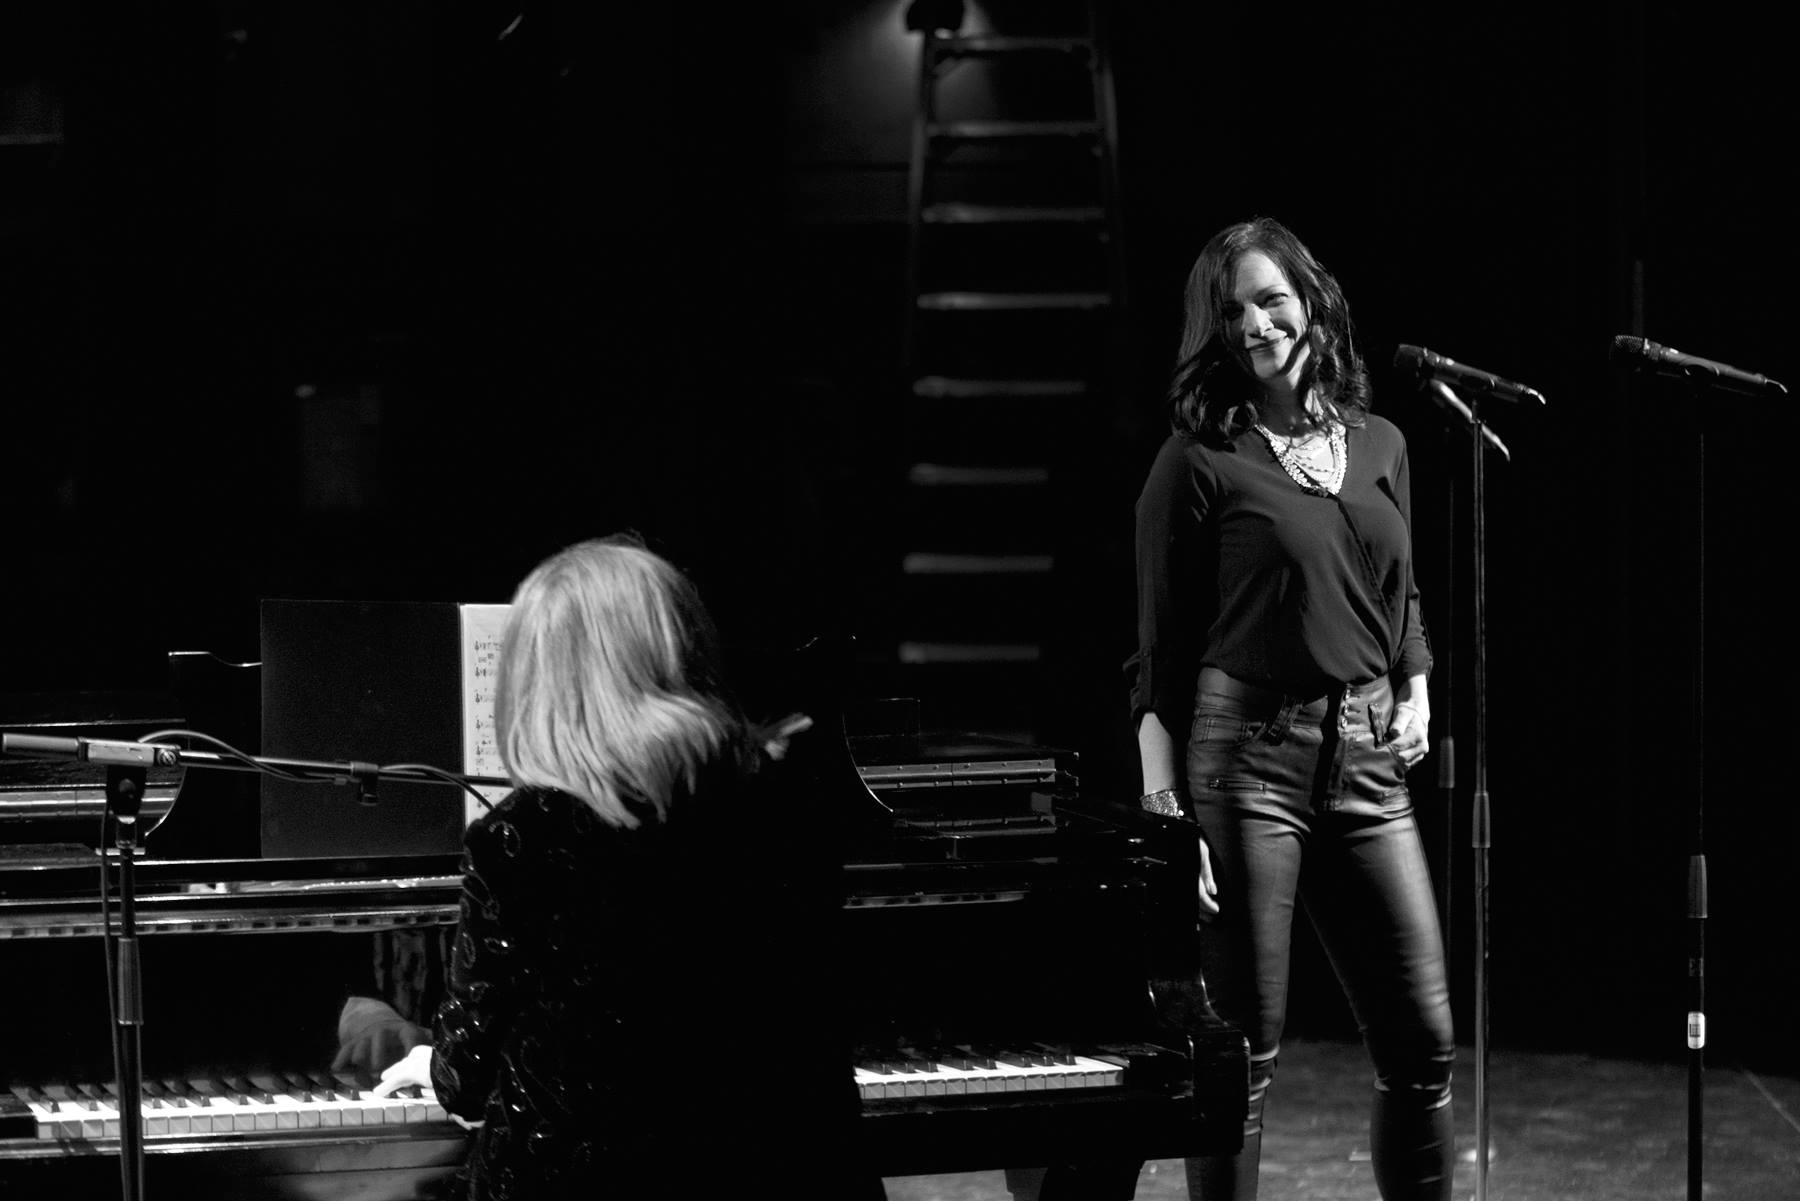 Mary Barry with Michelle Doyle on stage at Holy Heart Theatre